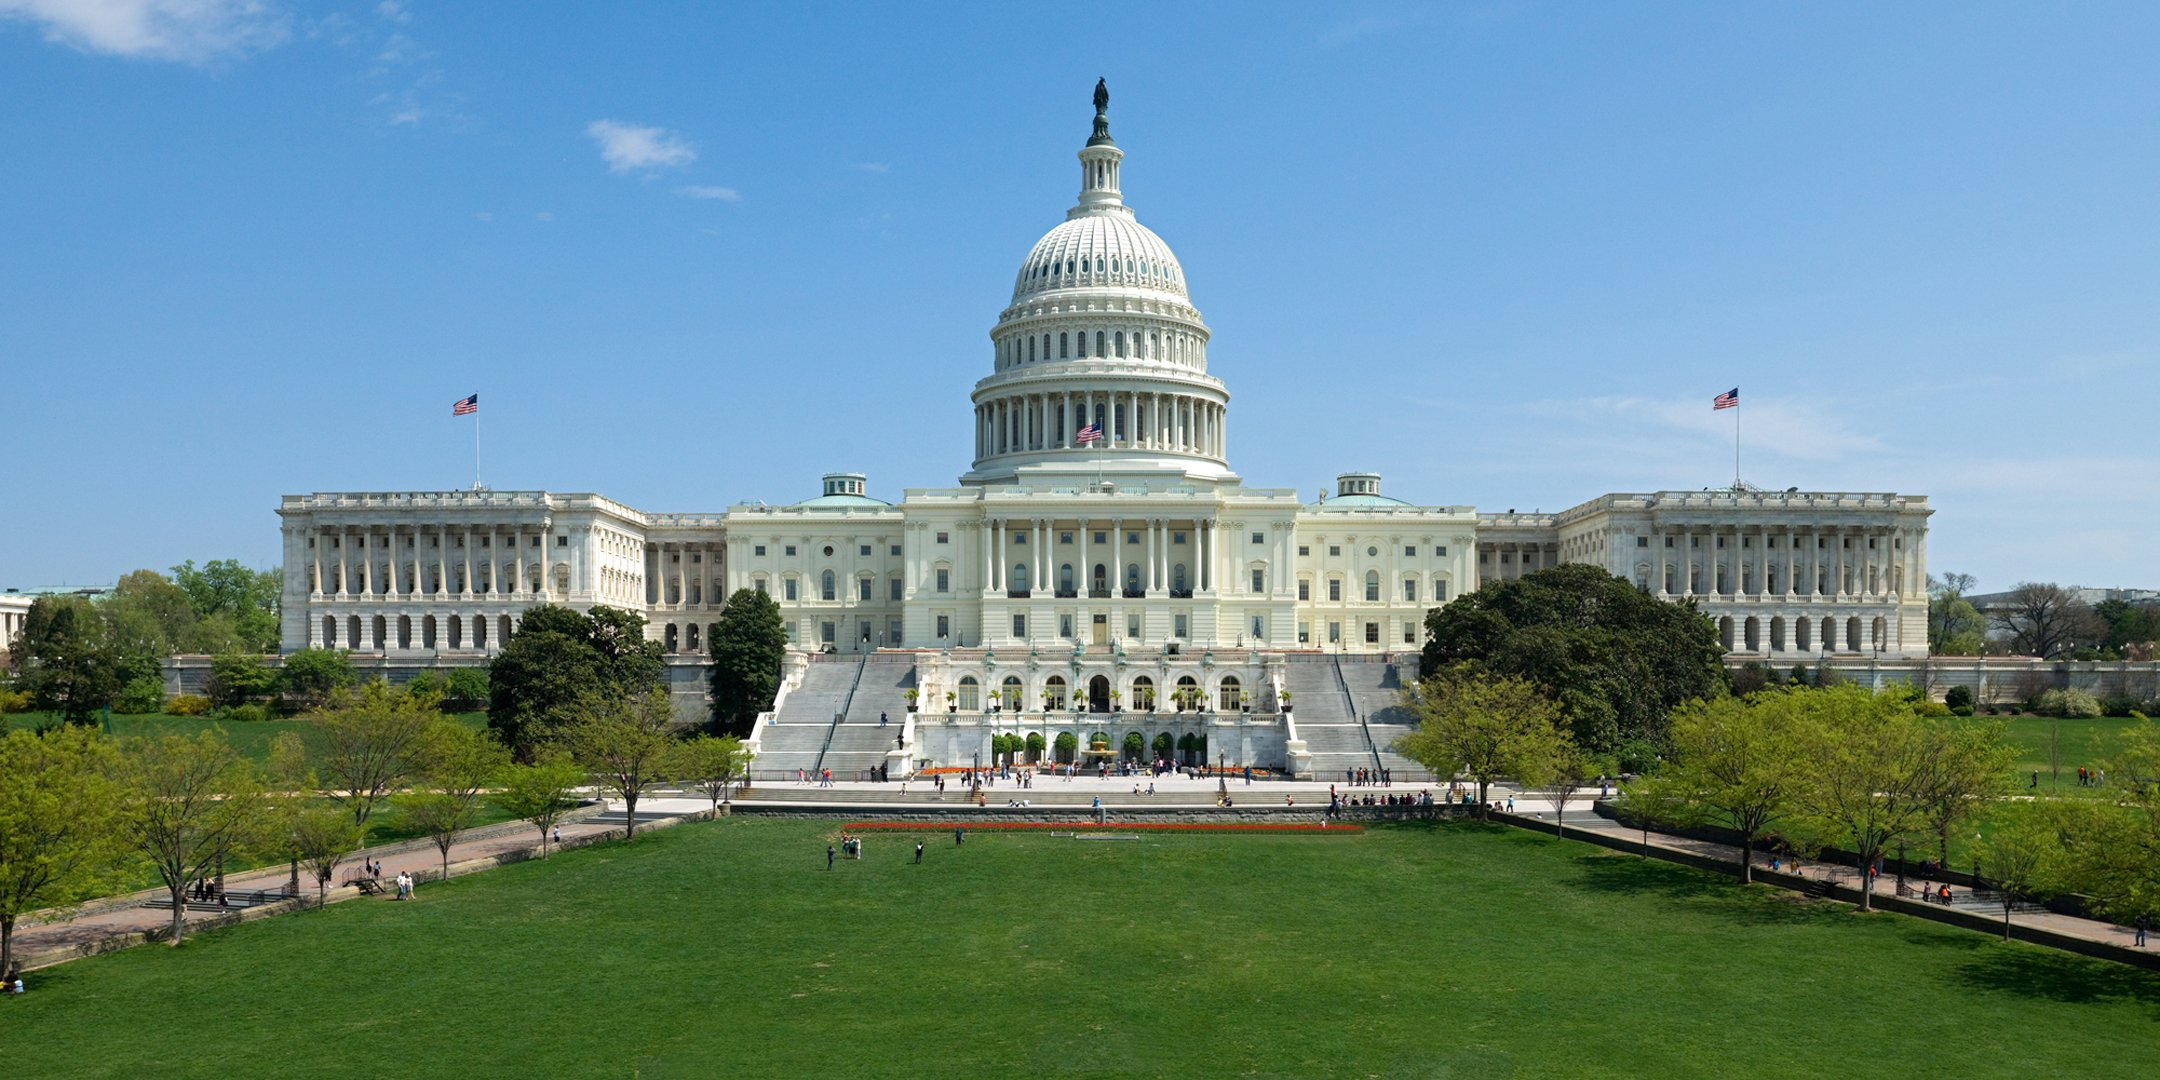 ATA, OOIDA Make Their Cases for Trucking in Senate Hearing